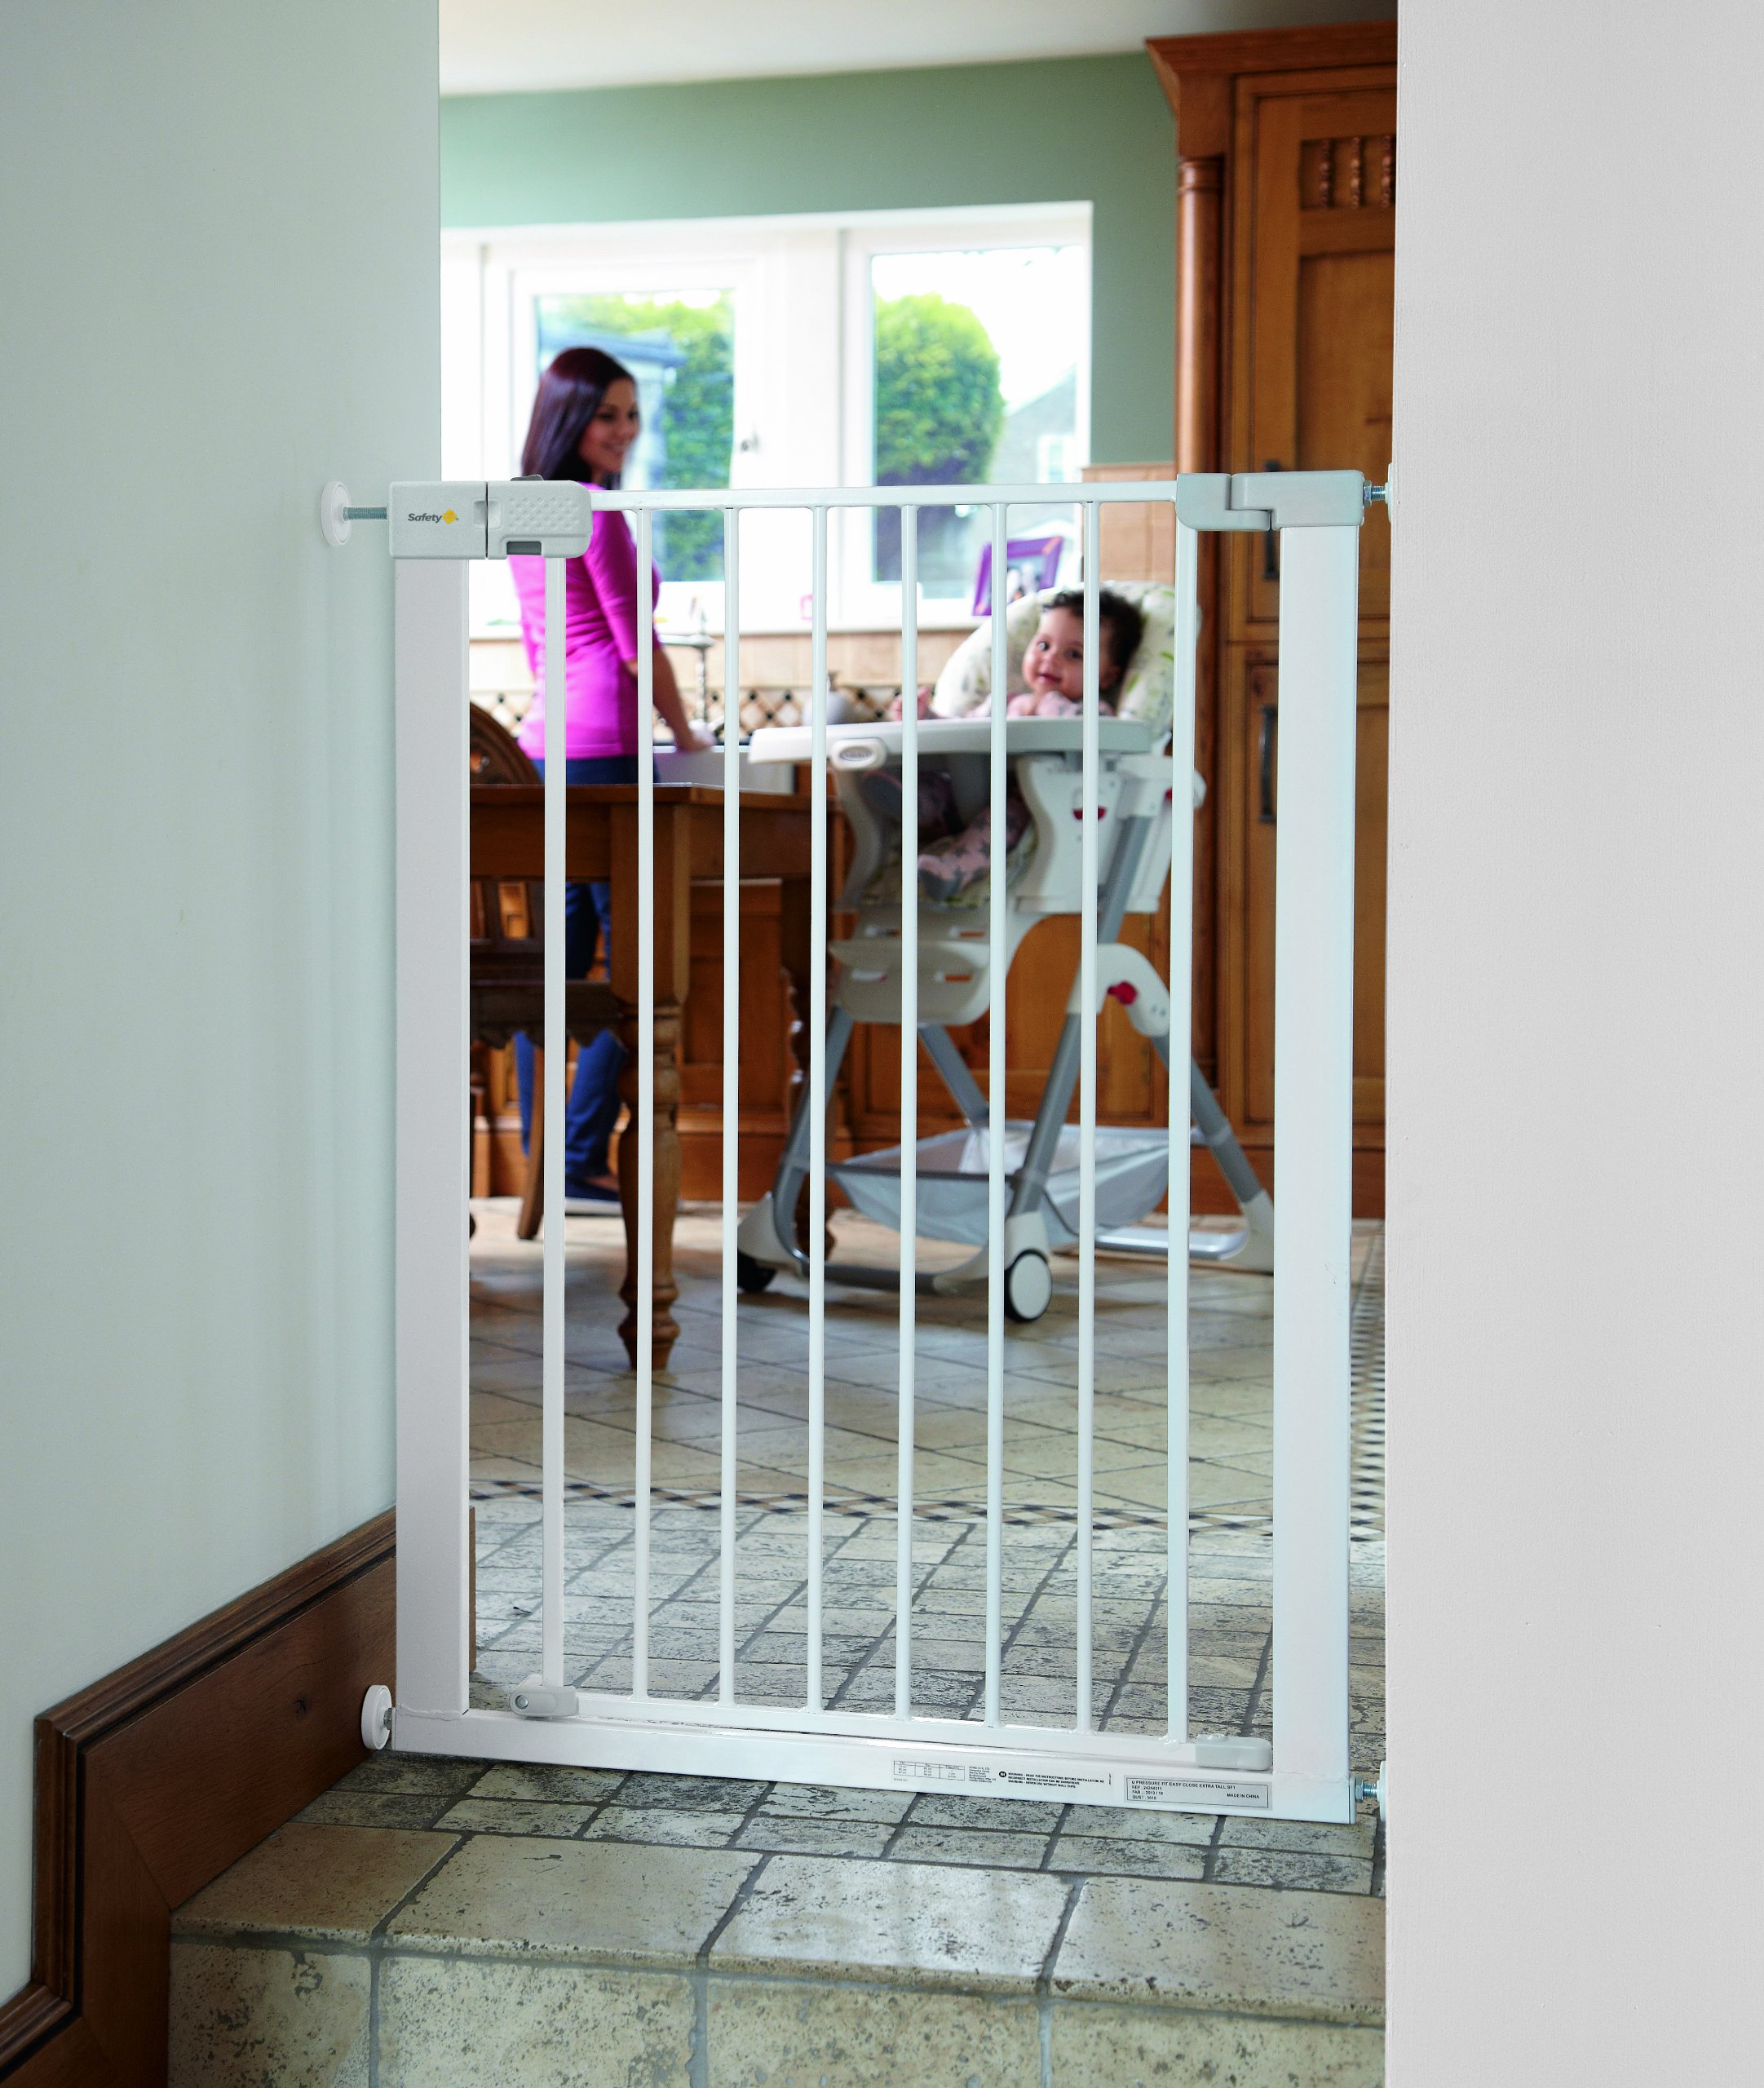 Safety 1st Simply Close Extra Tall Safety Metal Gate, Ideal for Kids and Pets, 73 to 80 cm, White